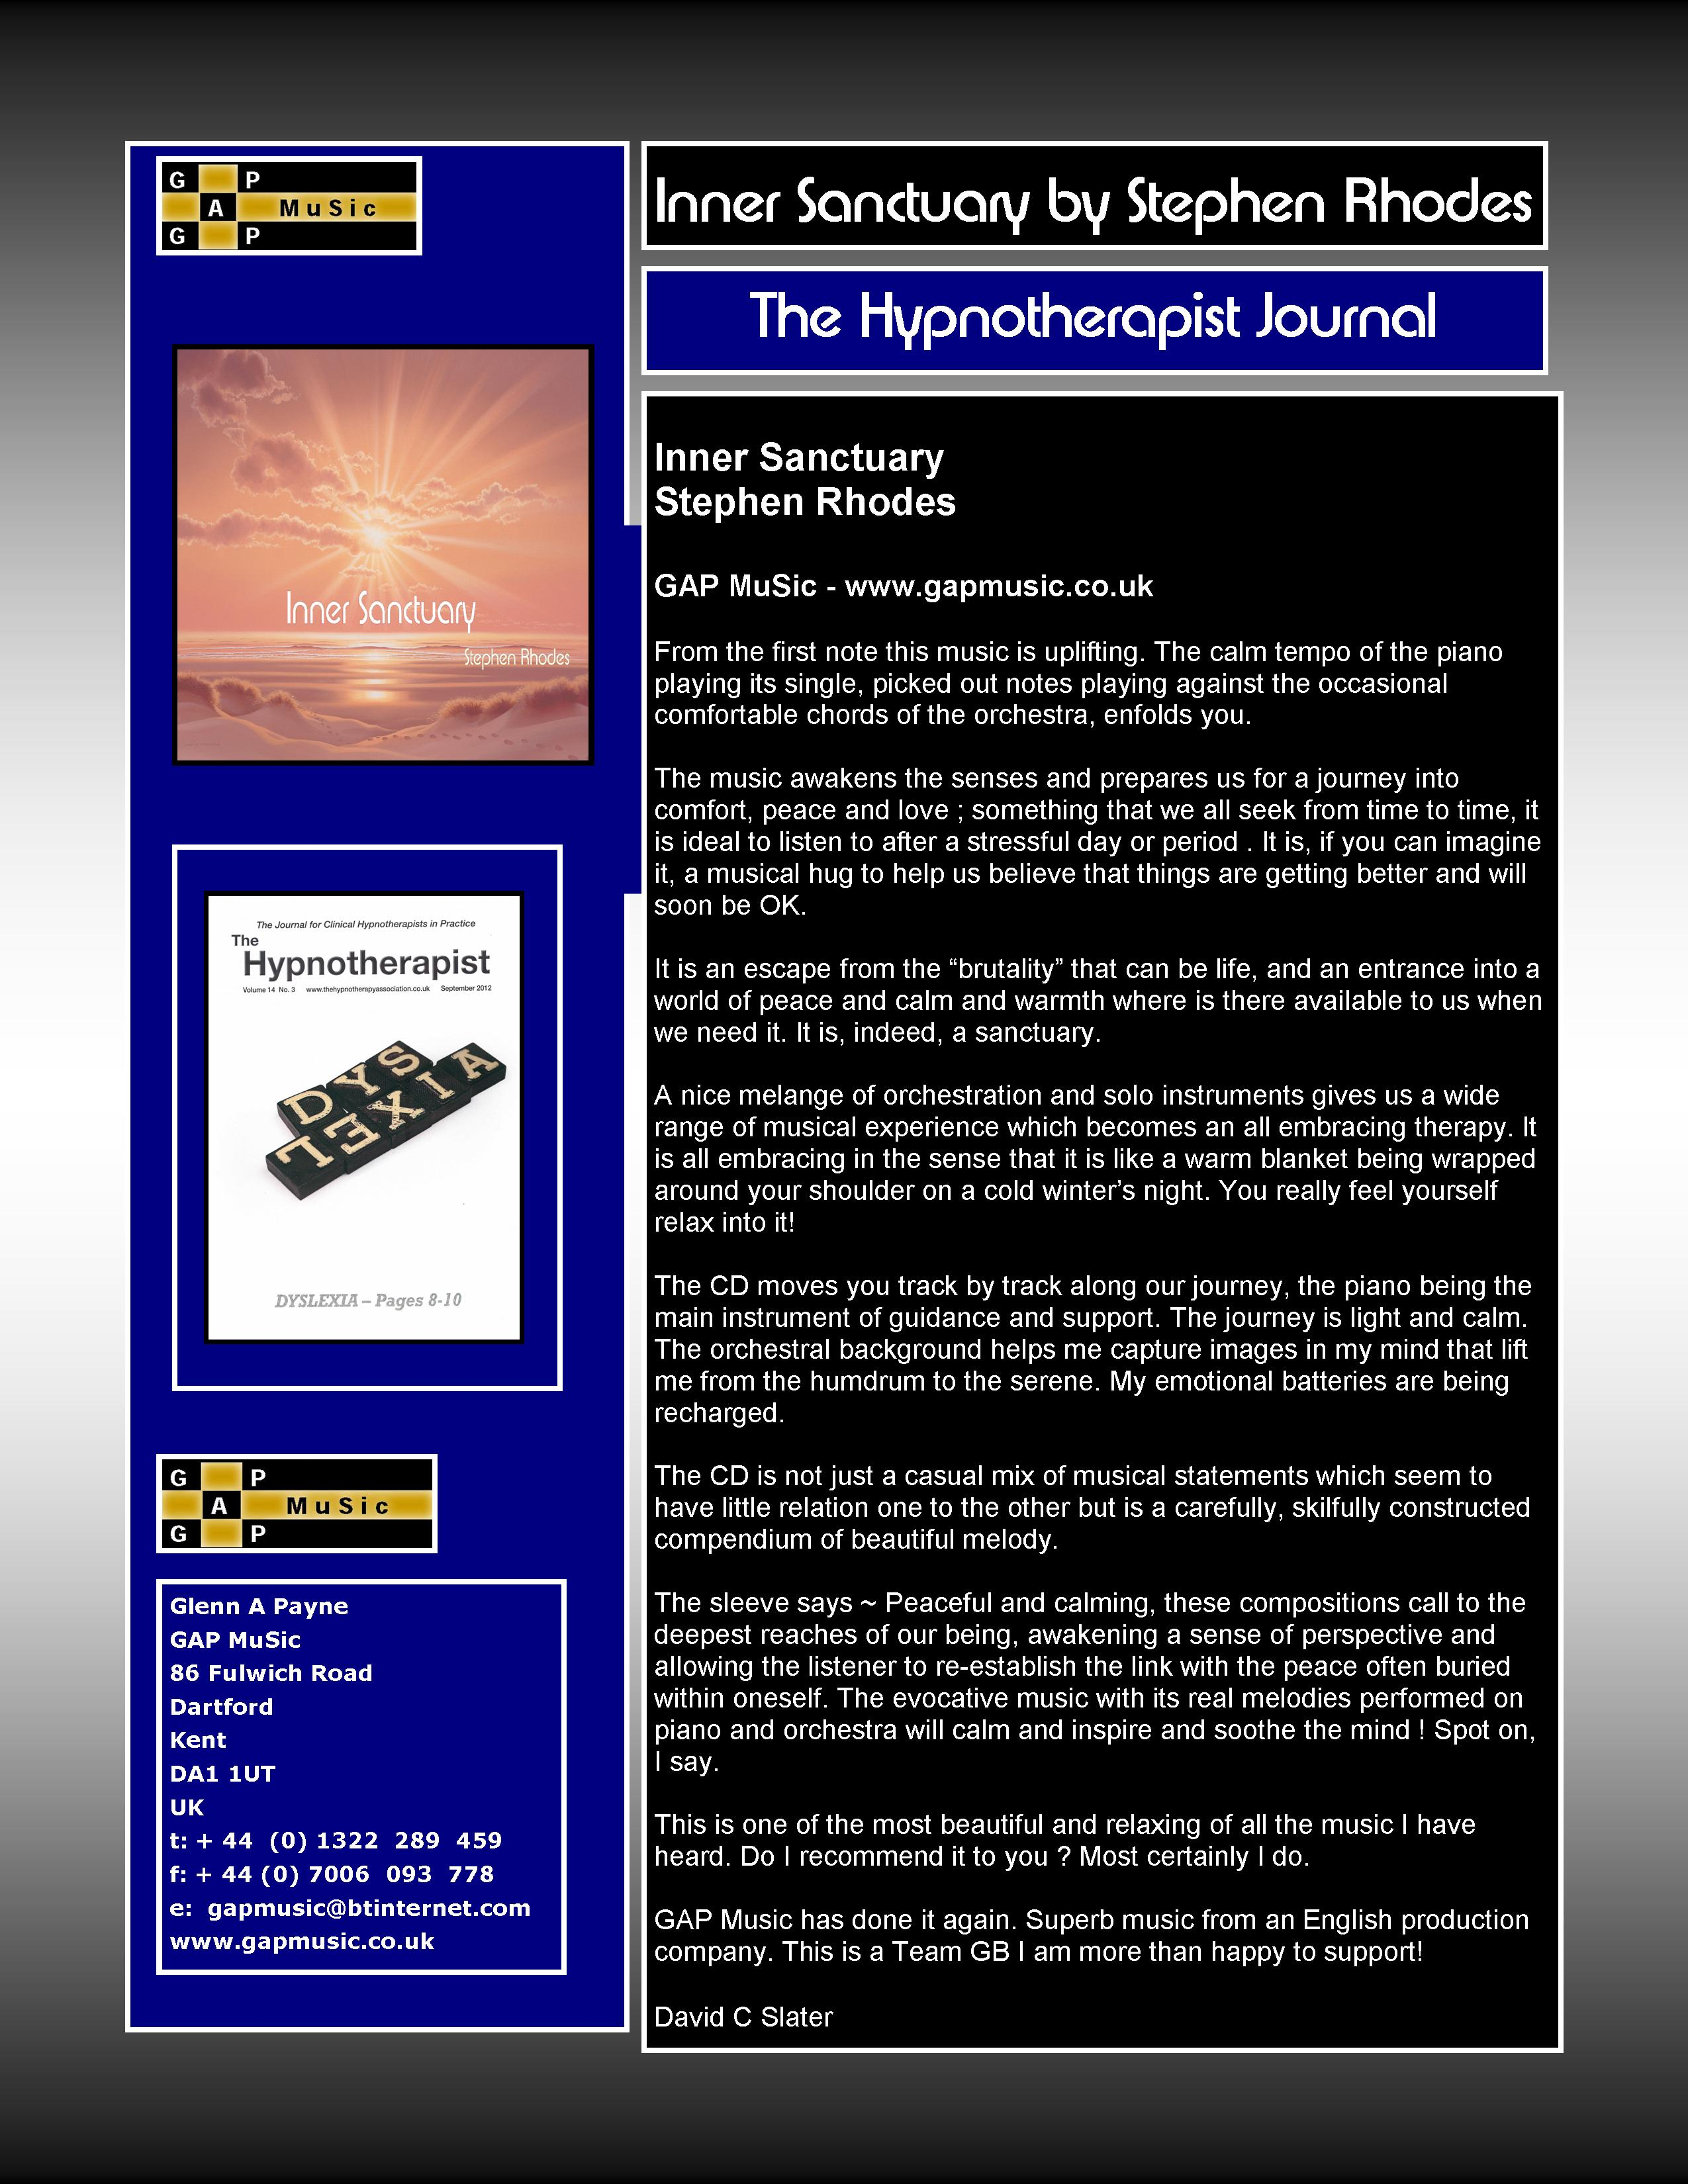 Inner Sanctuary - The Hypnotherapist Journal